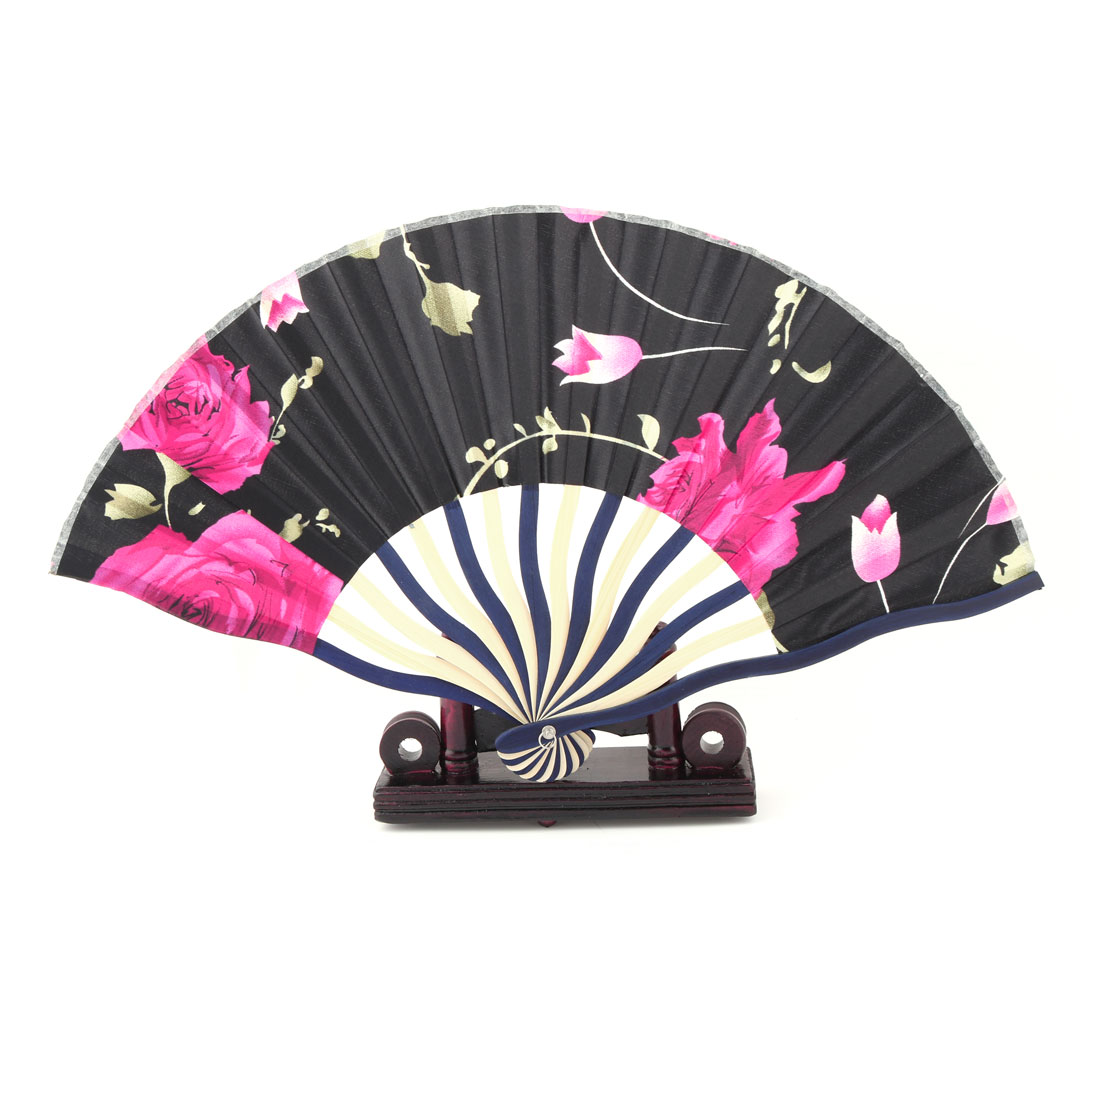 Household Flower Pattern Scallop Shaped Chinese Style Folding Dancing Fan 2 in 1